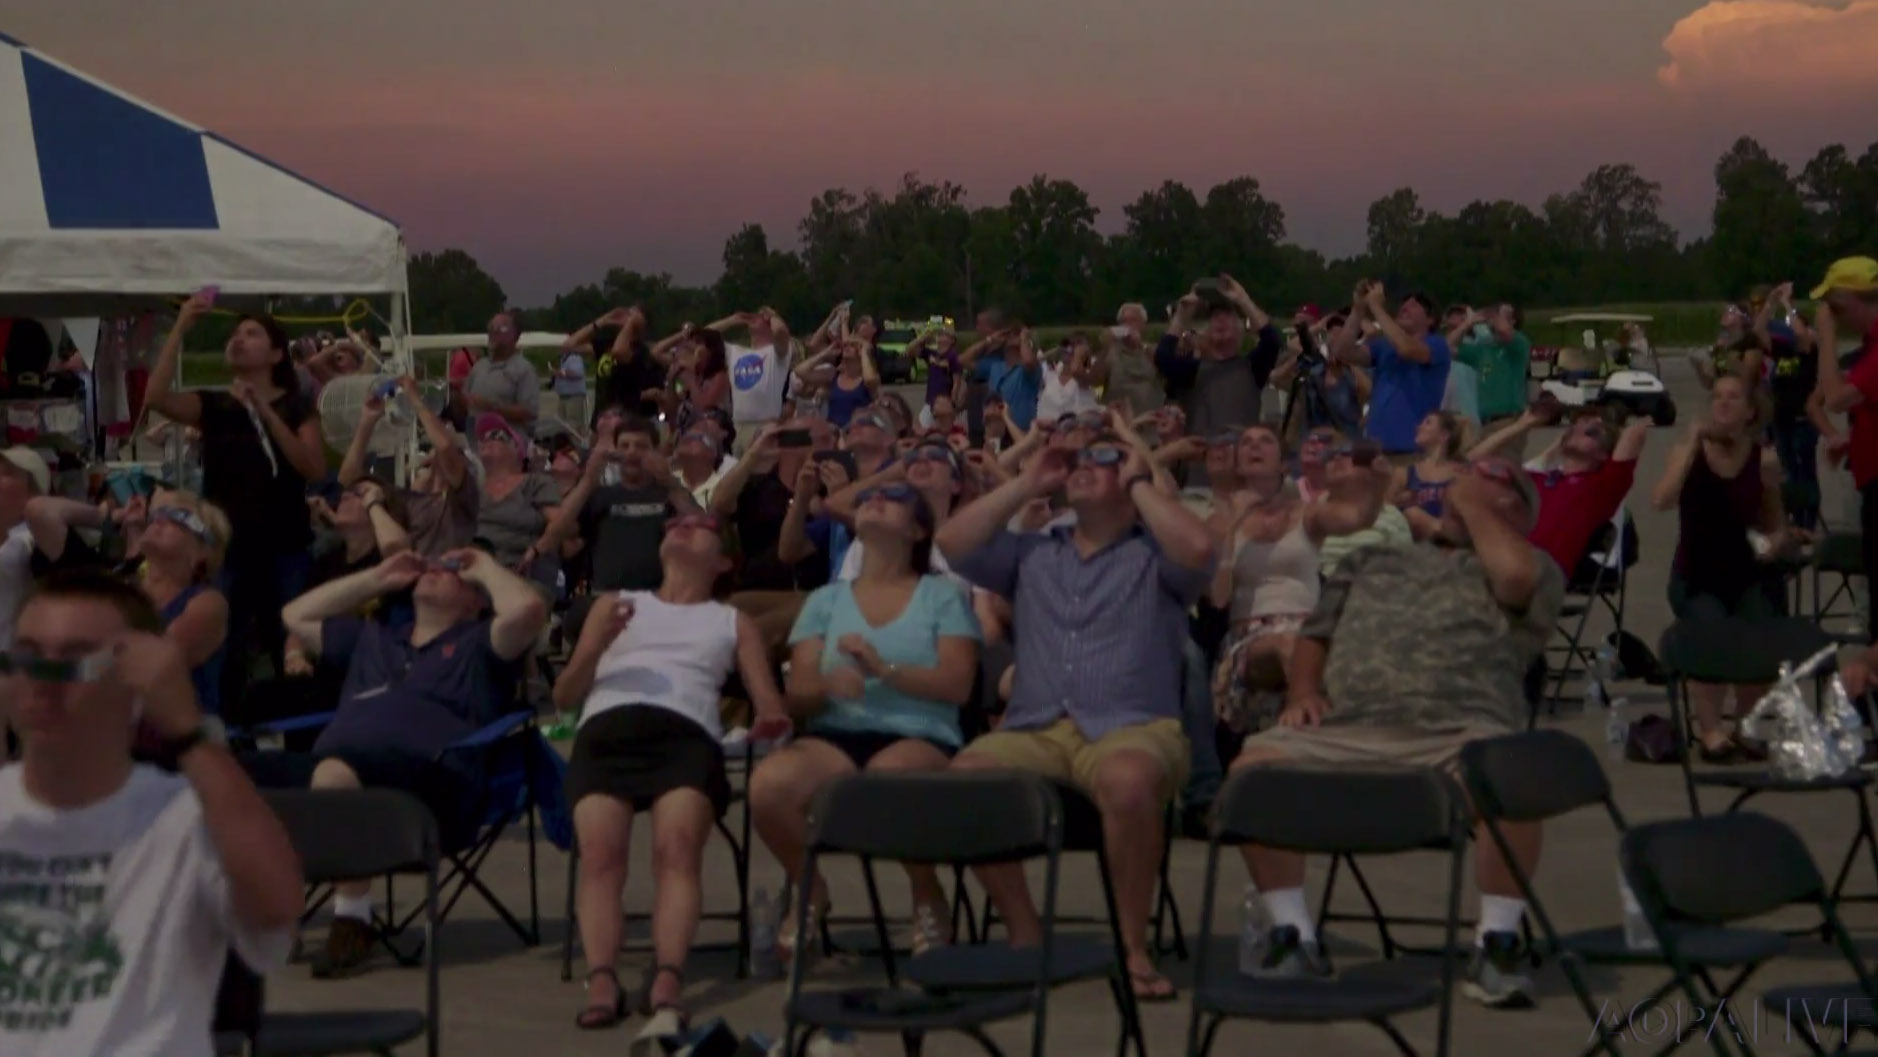 Sun gazers gather at Southern Illinois Airport in Carbondale to view the total solar eclipse Aug. 21, 2017.